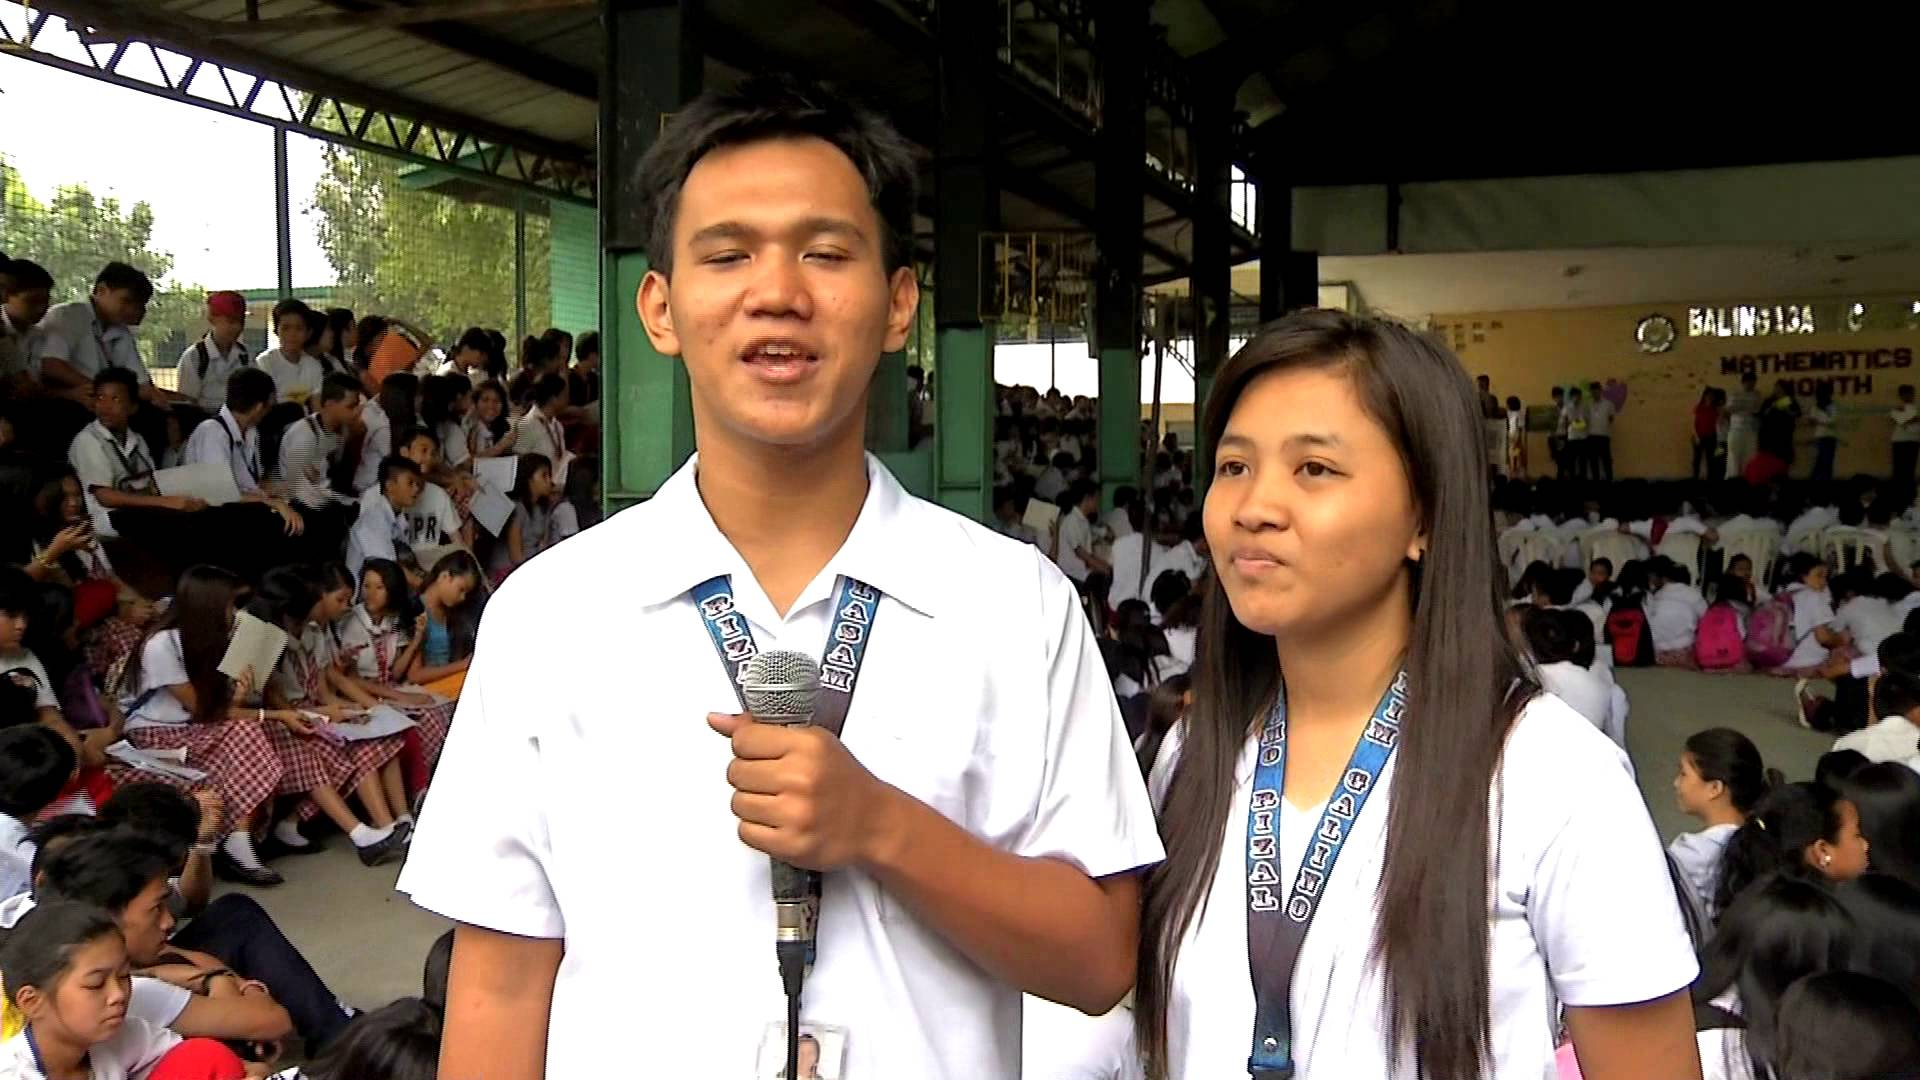 Students on the News – Balingasa High School Math Month